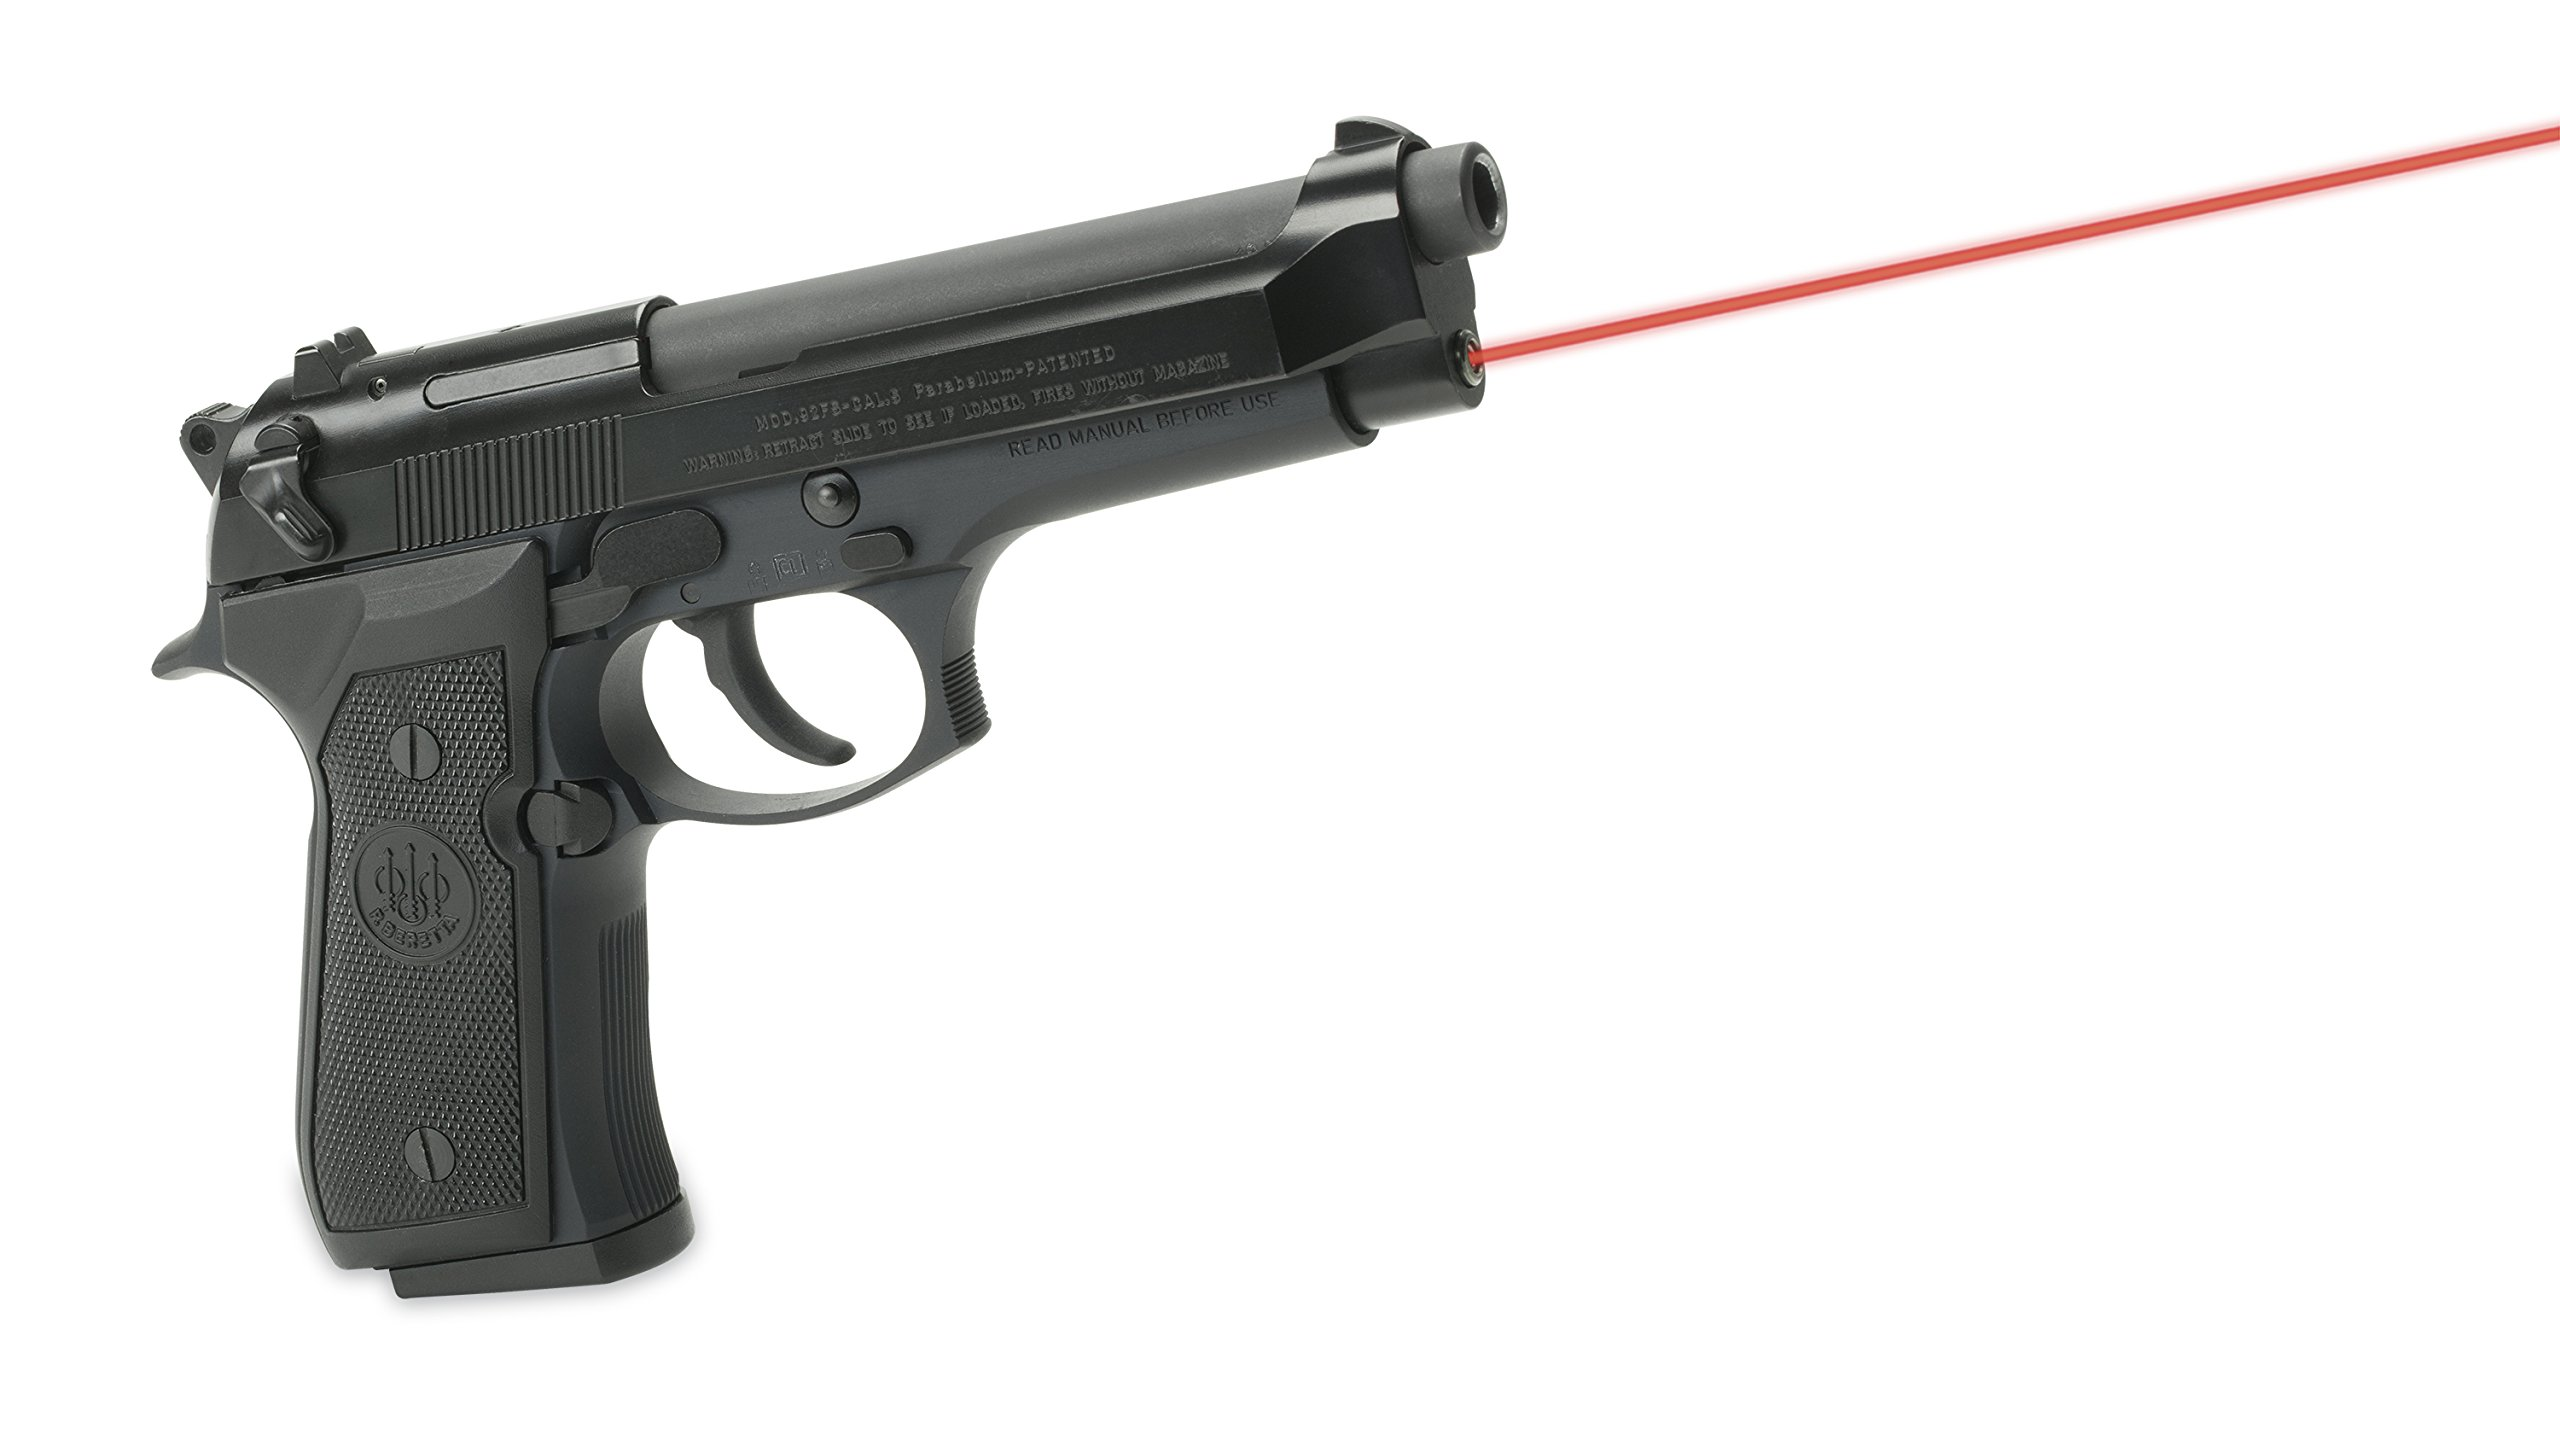 LaserMax LMS-1441 Guide Rod Laser for Beretta 92 & 96 full size and Taurus PT92, PT99, PT100, and PT101 by LaserMax (Image #7)